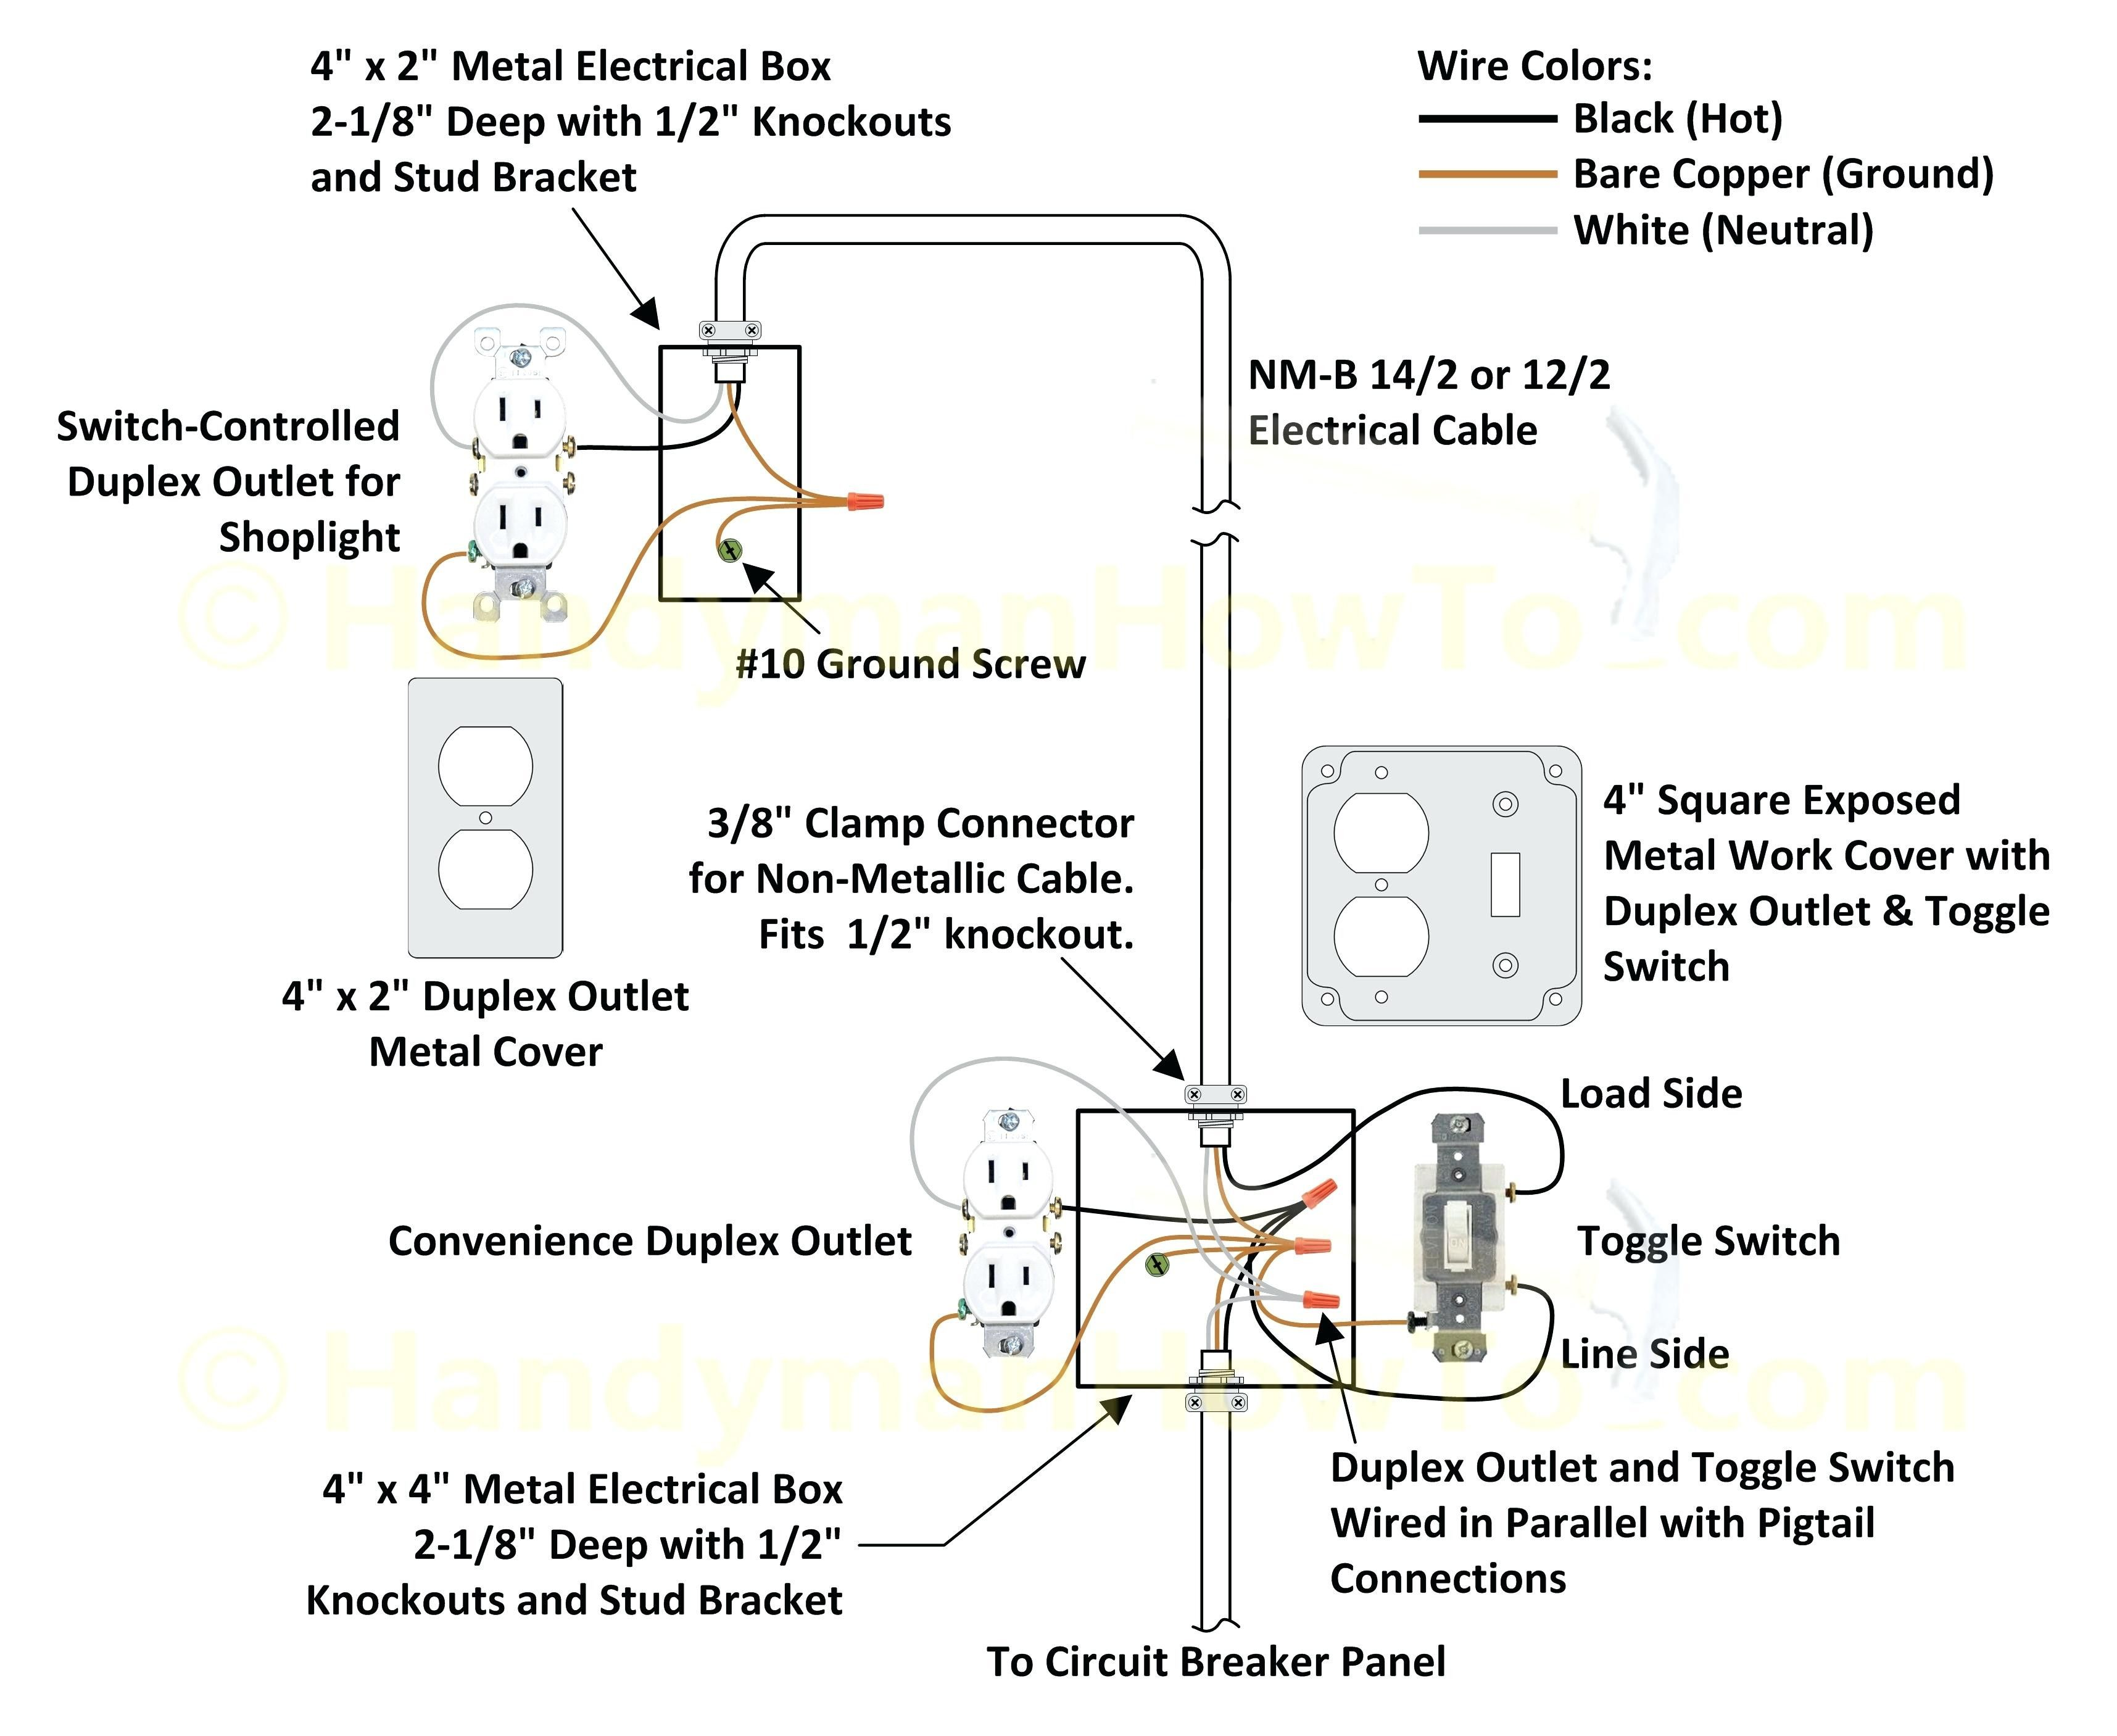 New Wiring Diagram Outlet Diagrams Digramssample Diagramimages Wiringdiagramsample Wiringdiagram Check Attic Renovation Metal Electrical Box Attic Storage